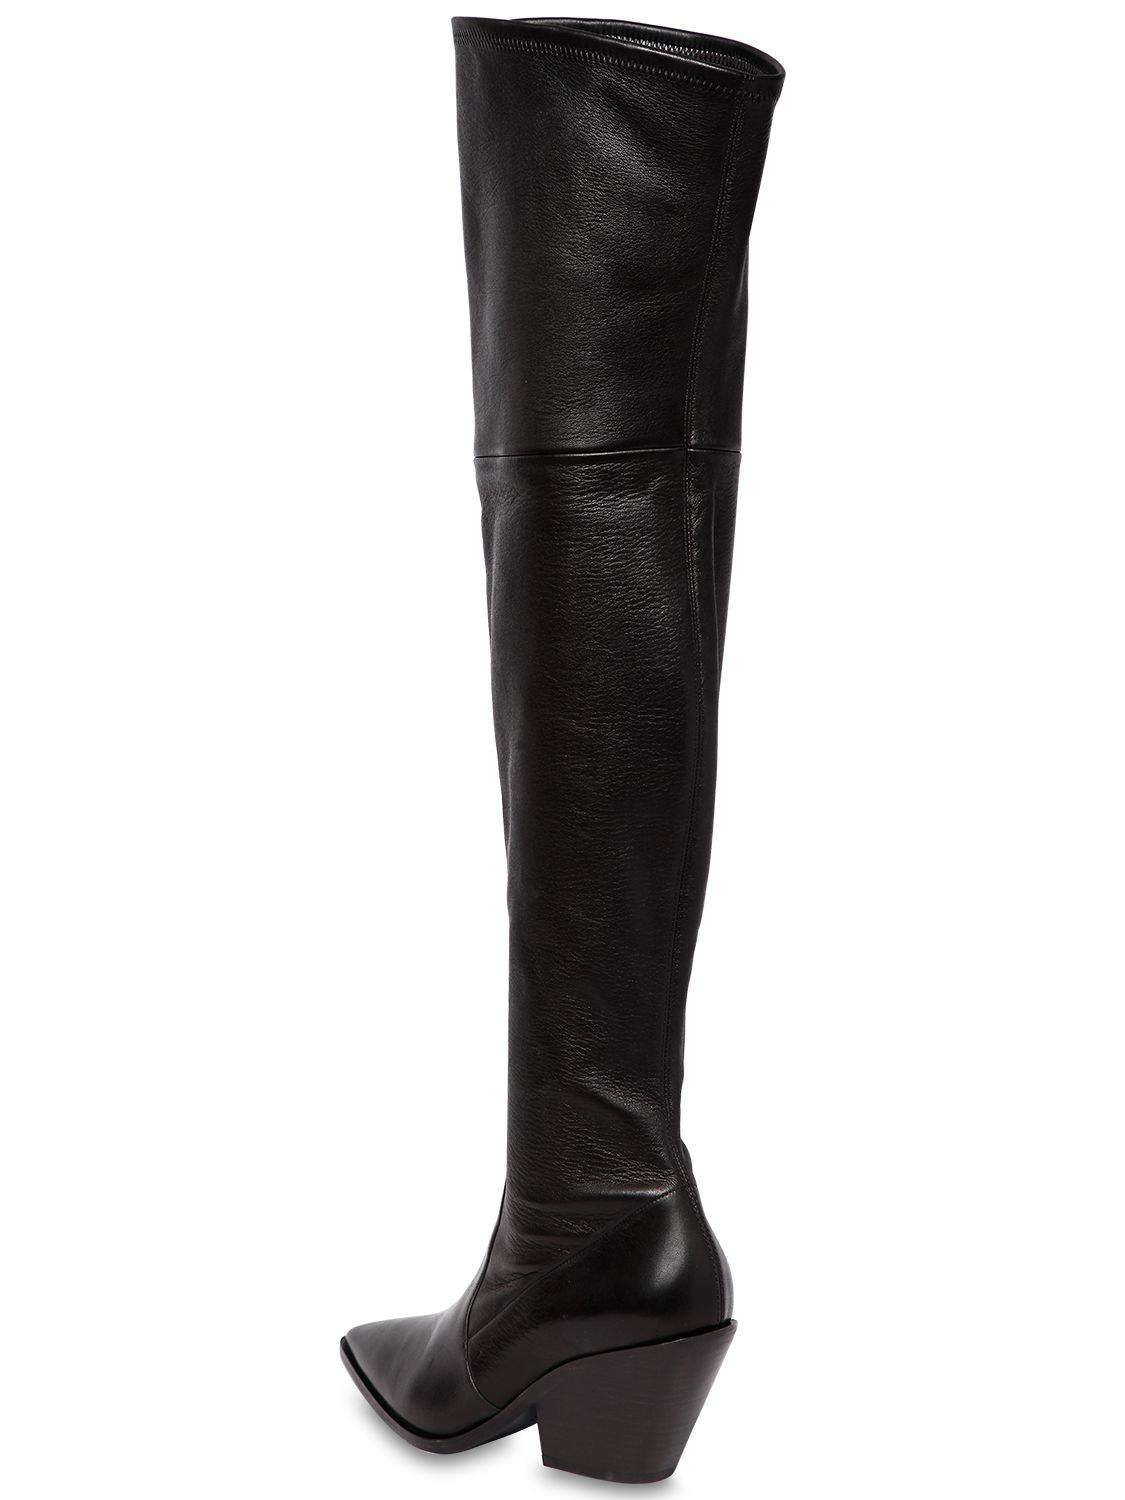 Casadei60MM WEST STRETCH LEATHER CUISSARDE BOOT sawDHe